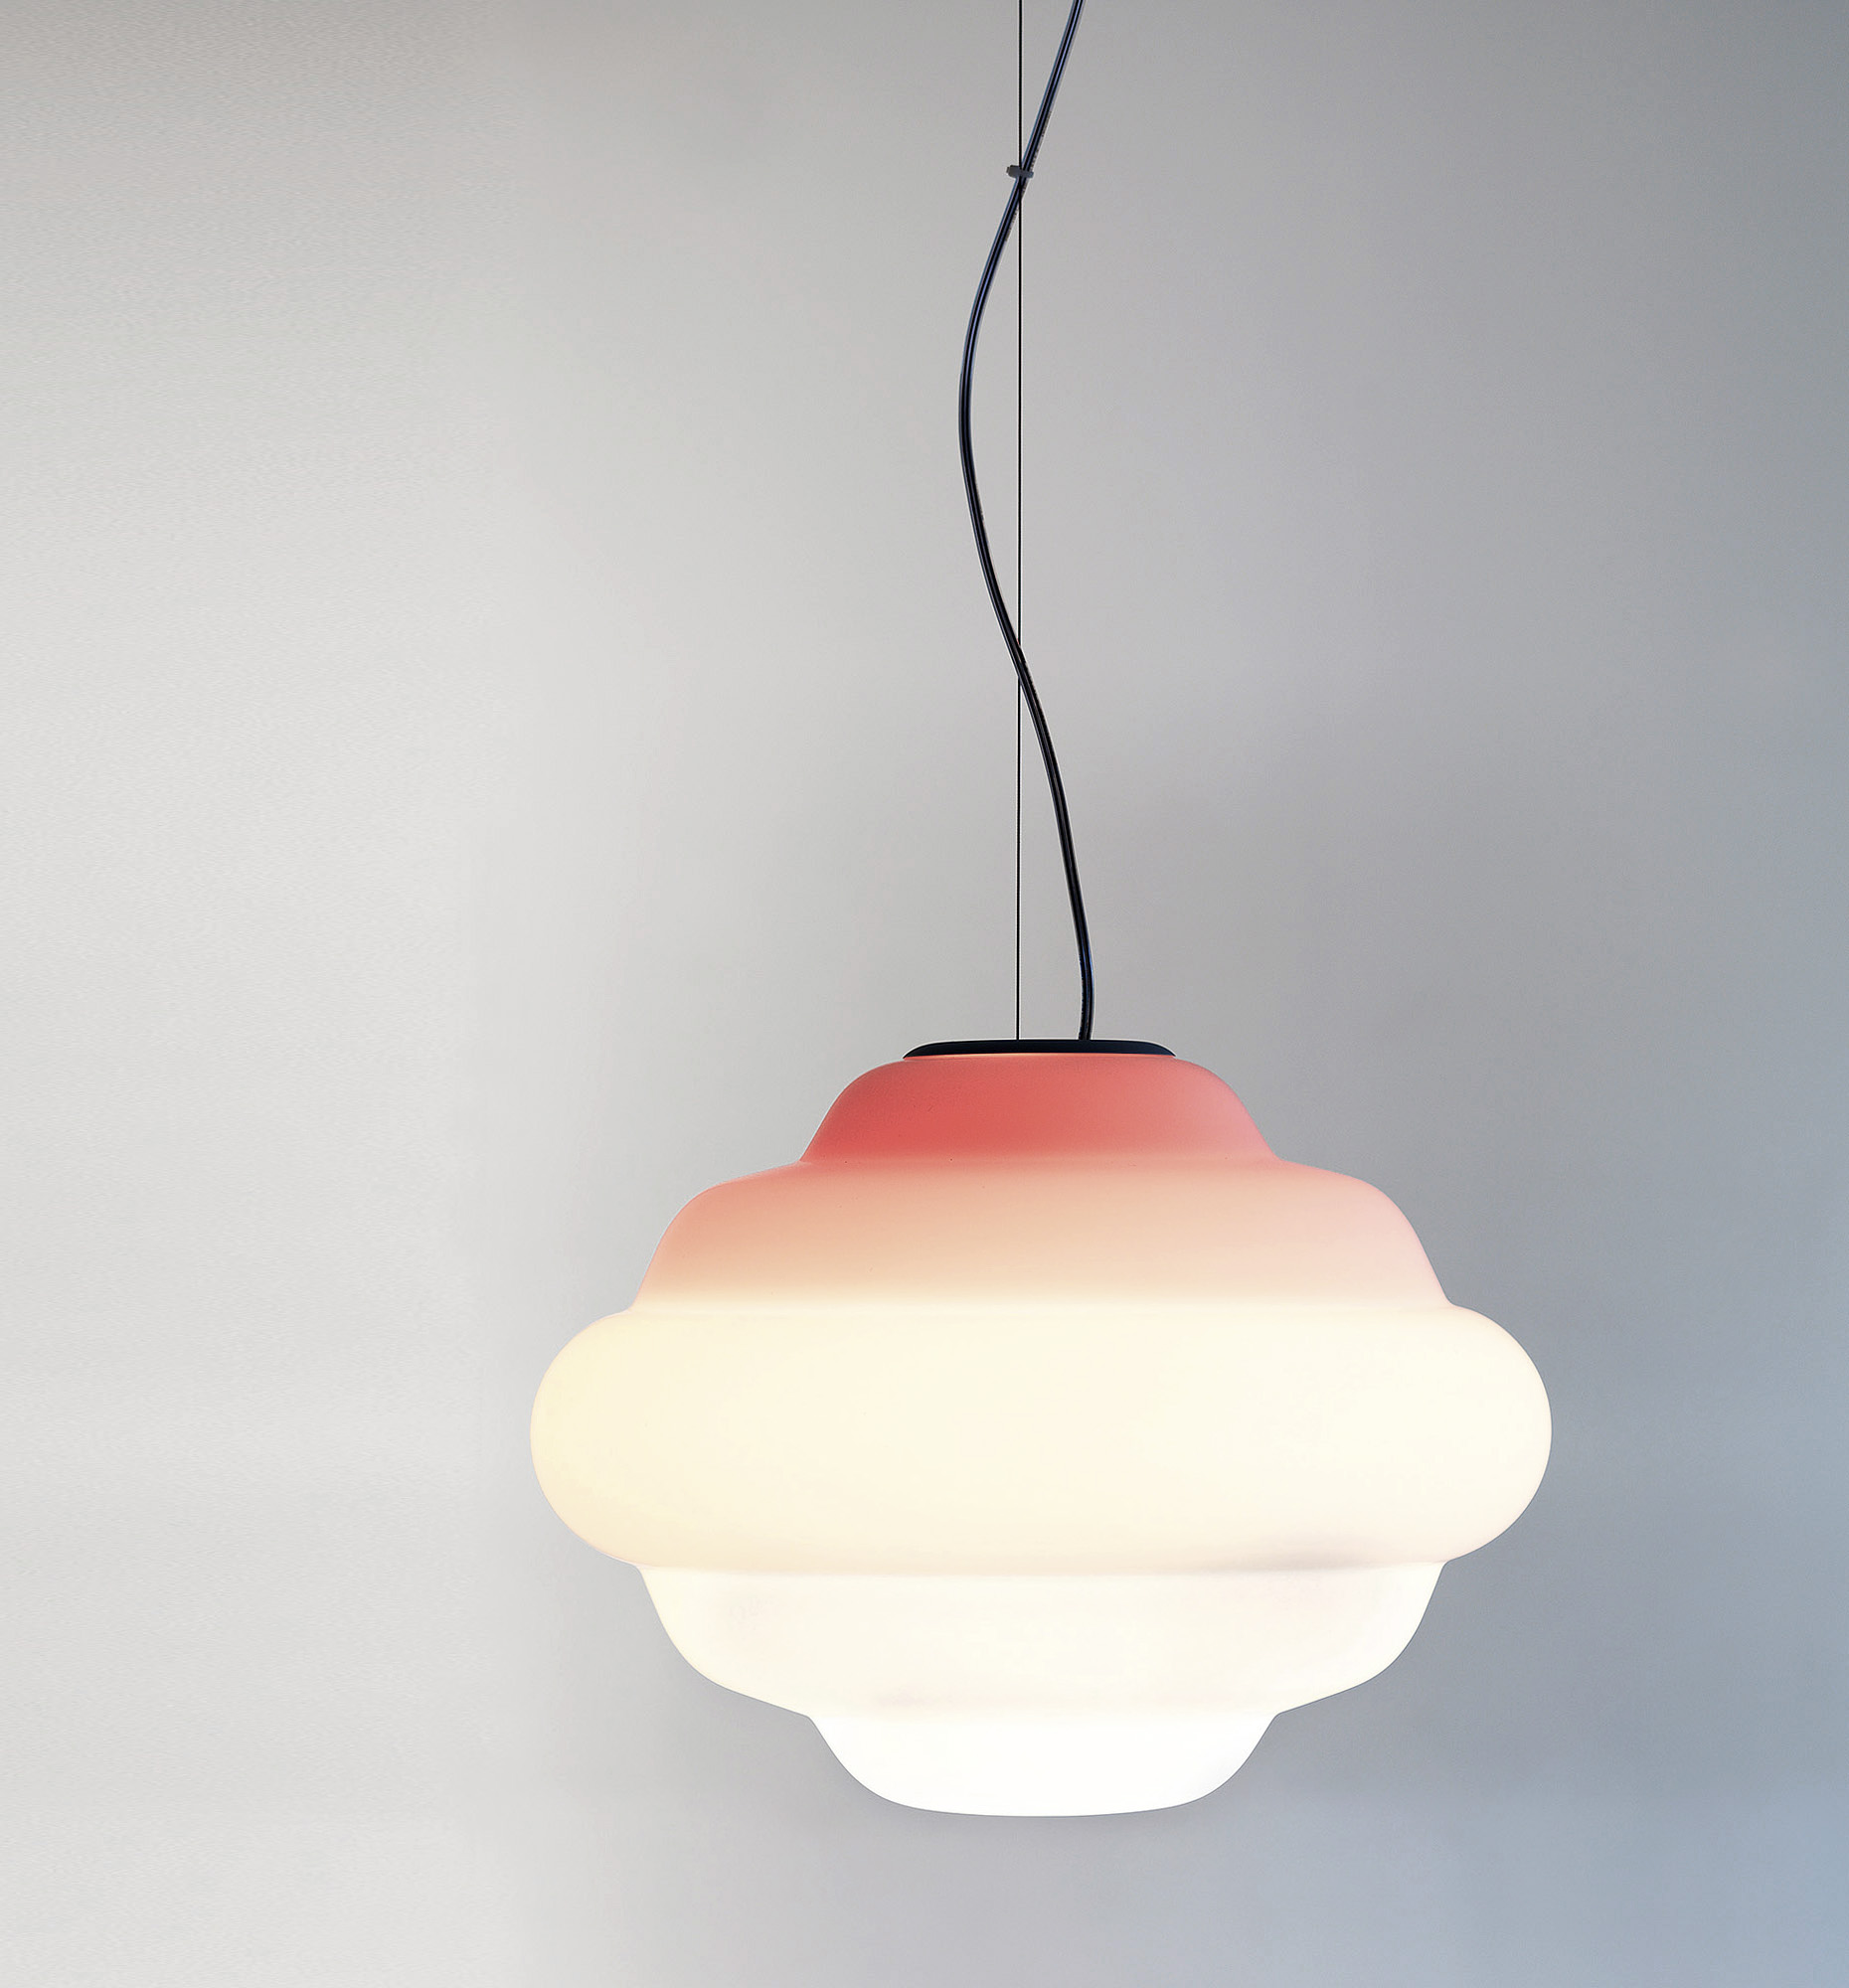 Cloud Pendant Light (2013)